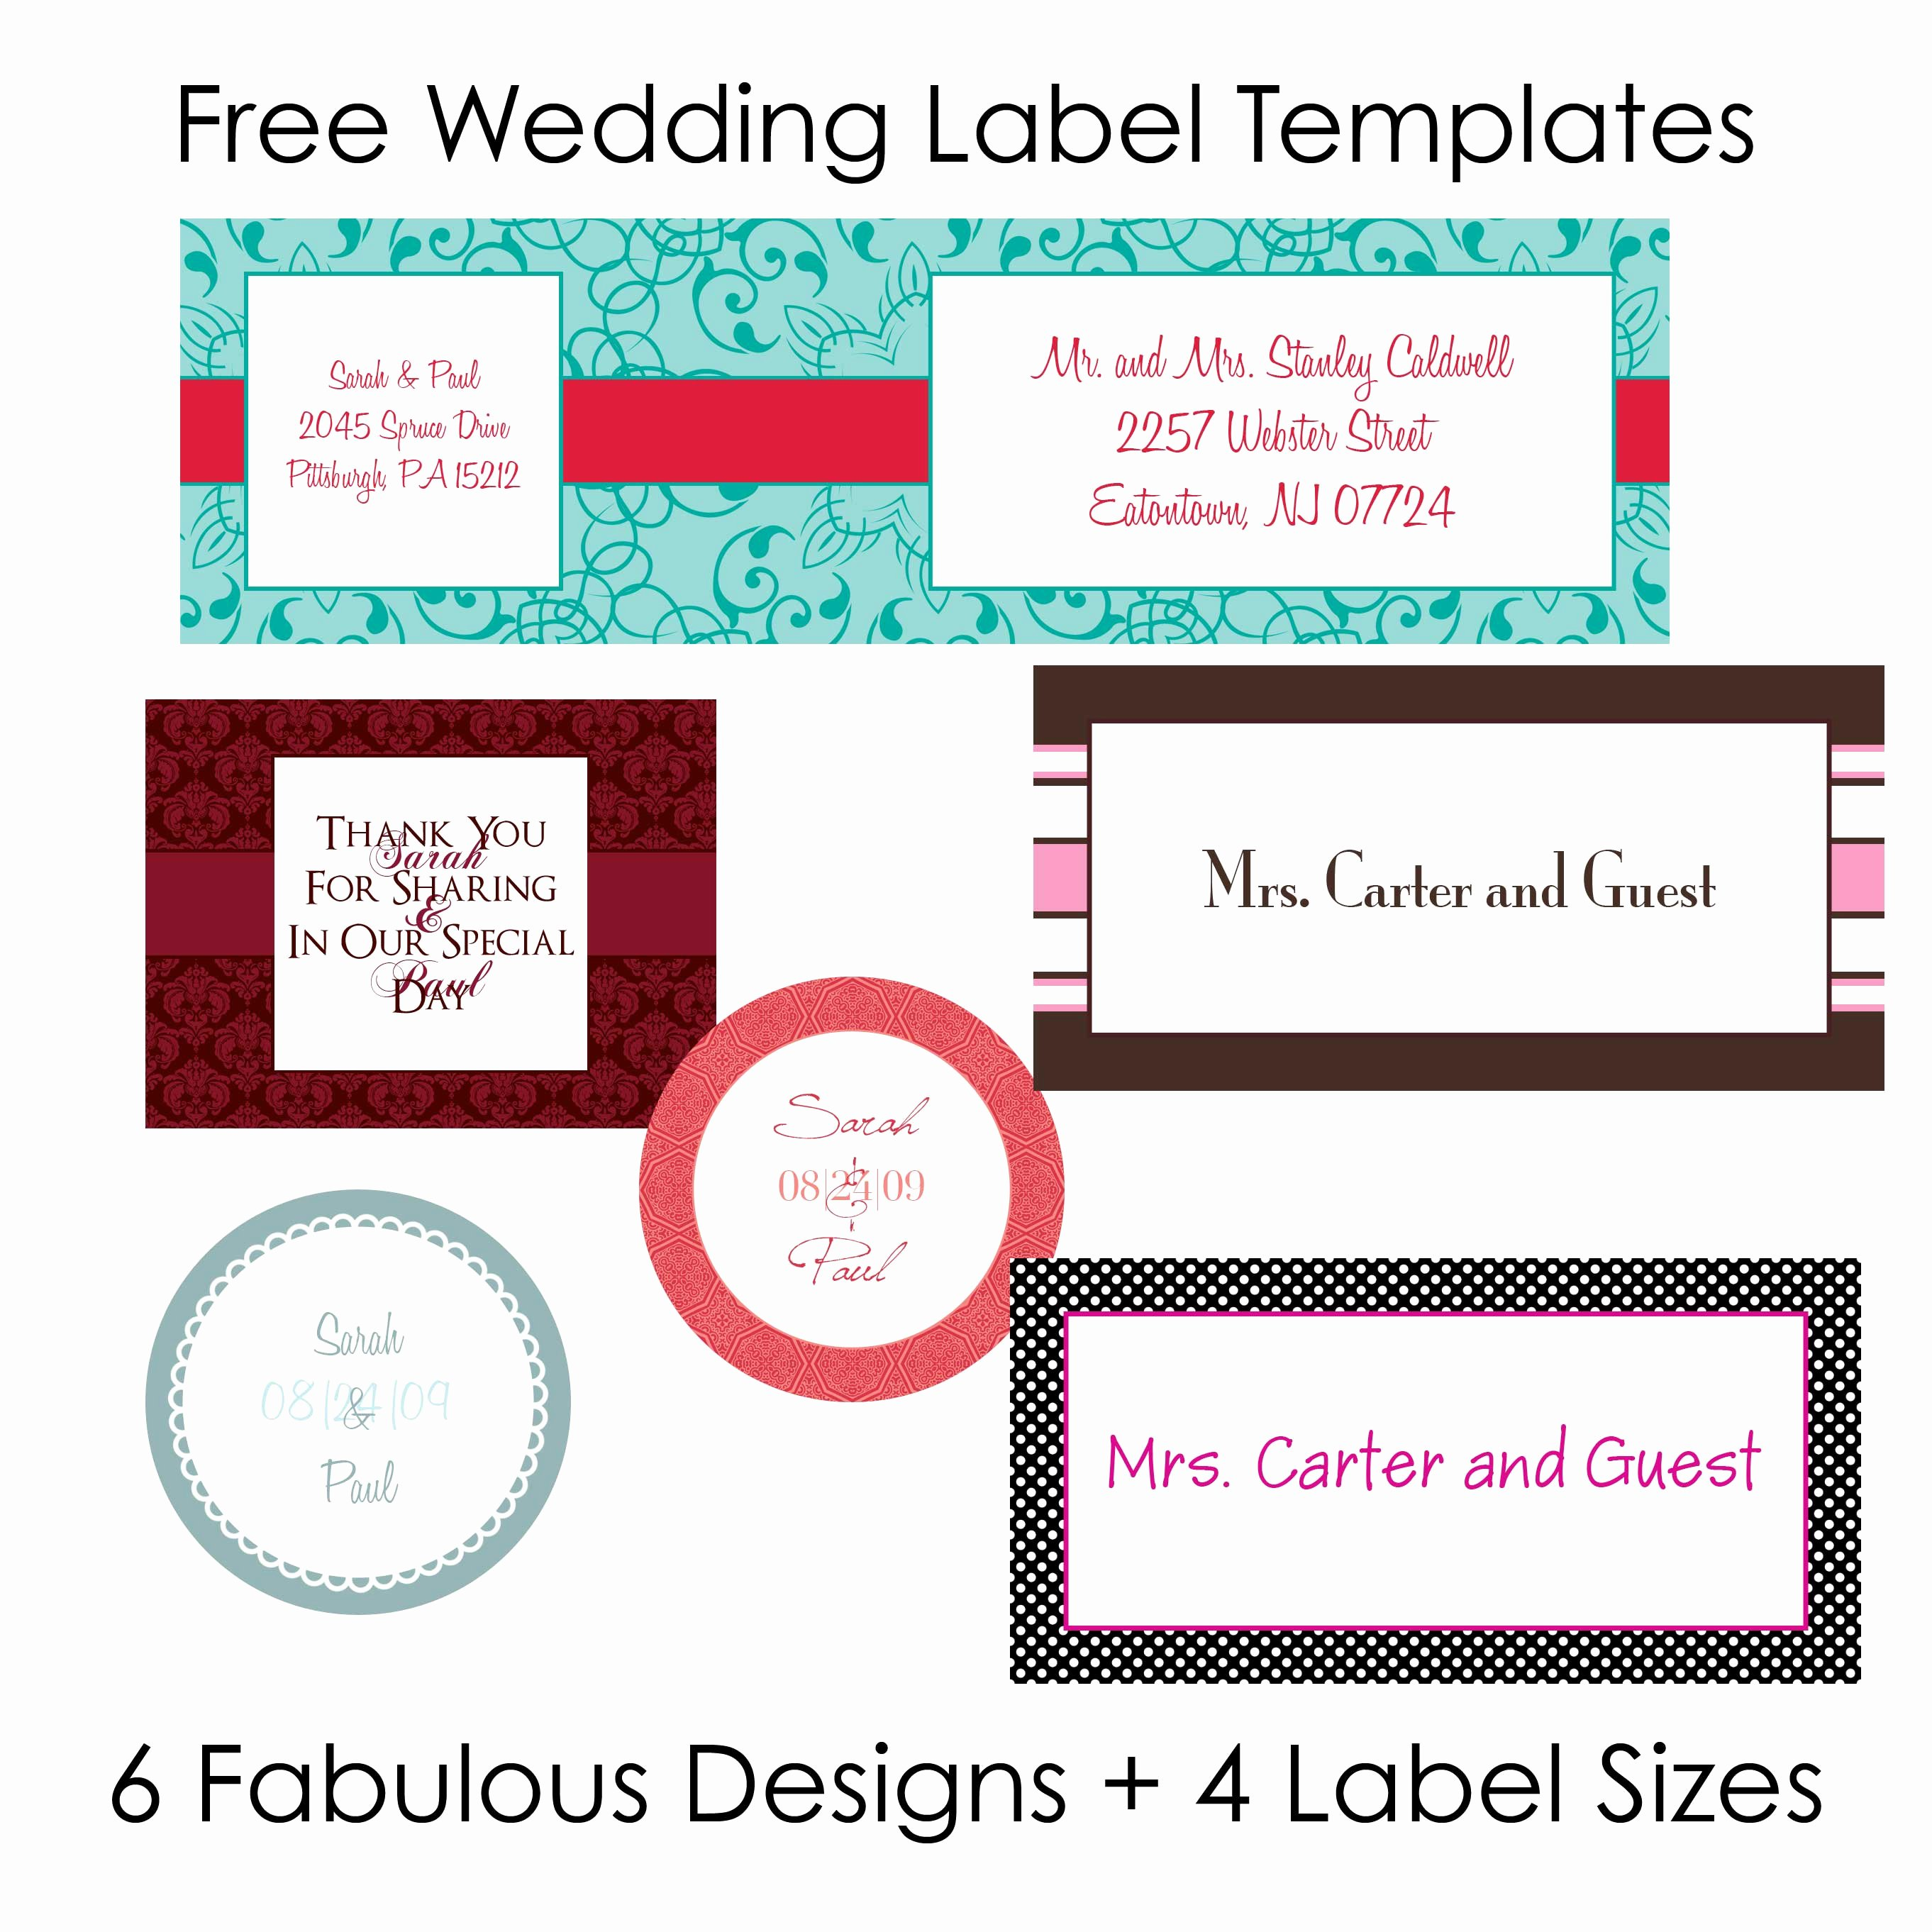 Wedding Address Label Template Beautiful Diy Wedding Labels for Free Collection Two